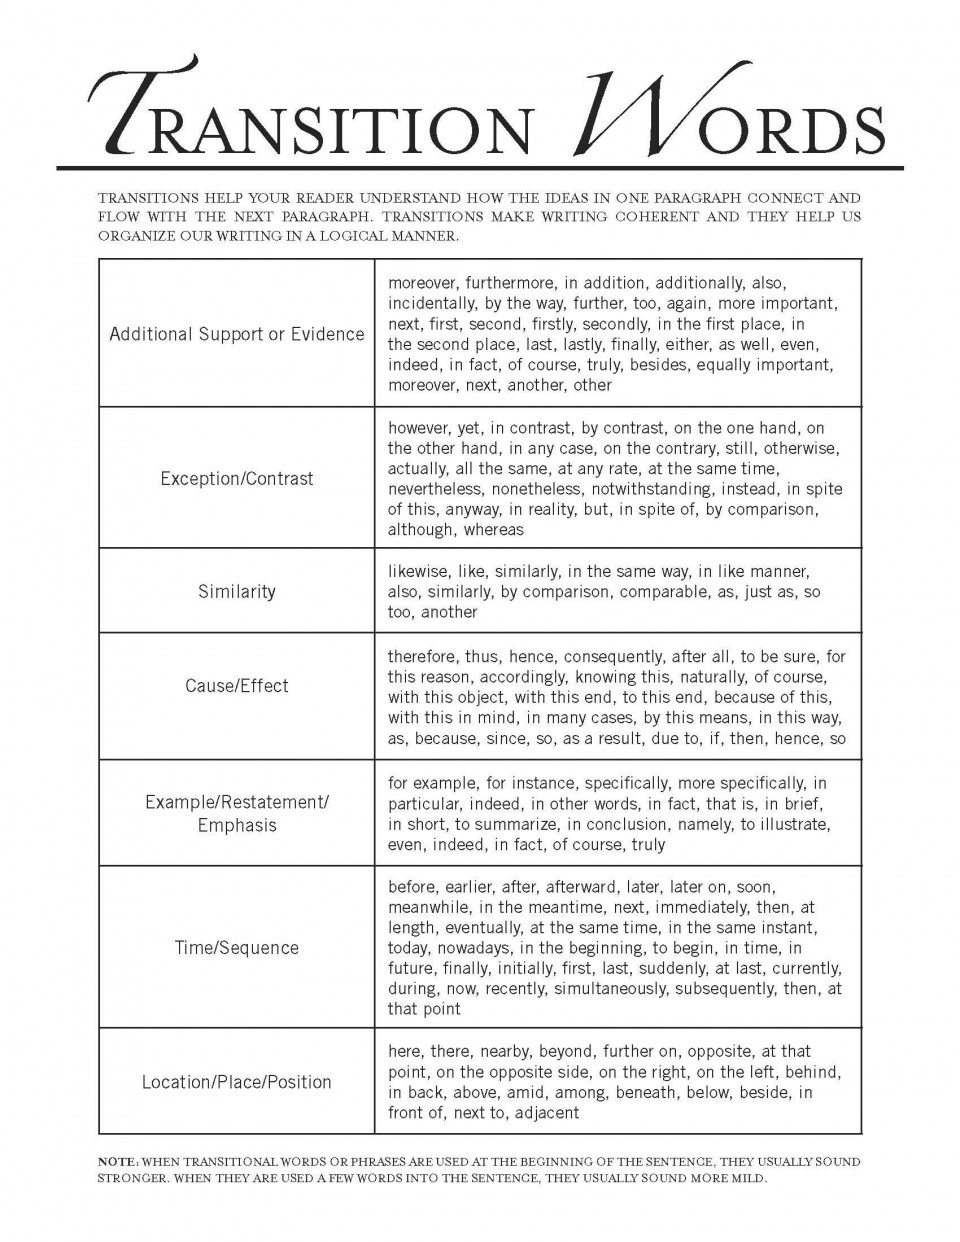 002 Essay Example Transition Words For Essays Rare And Phrases List Pdf 4th Grade Of Writing 960